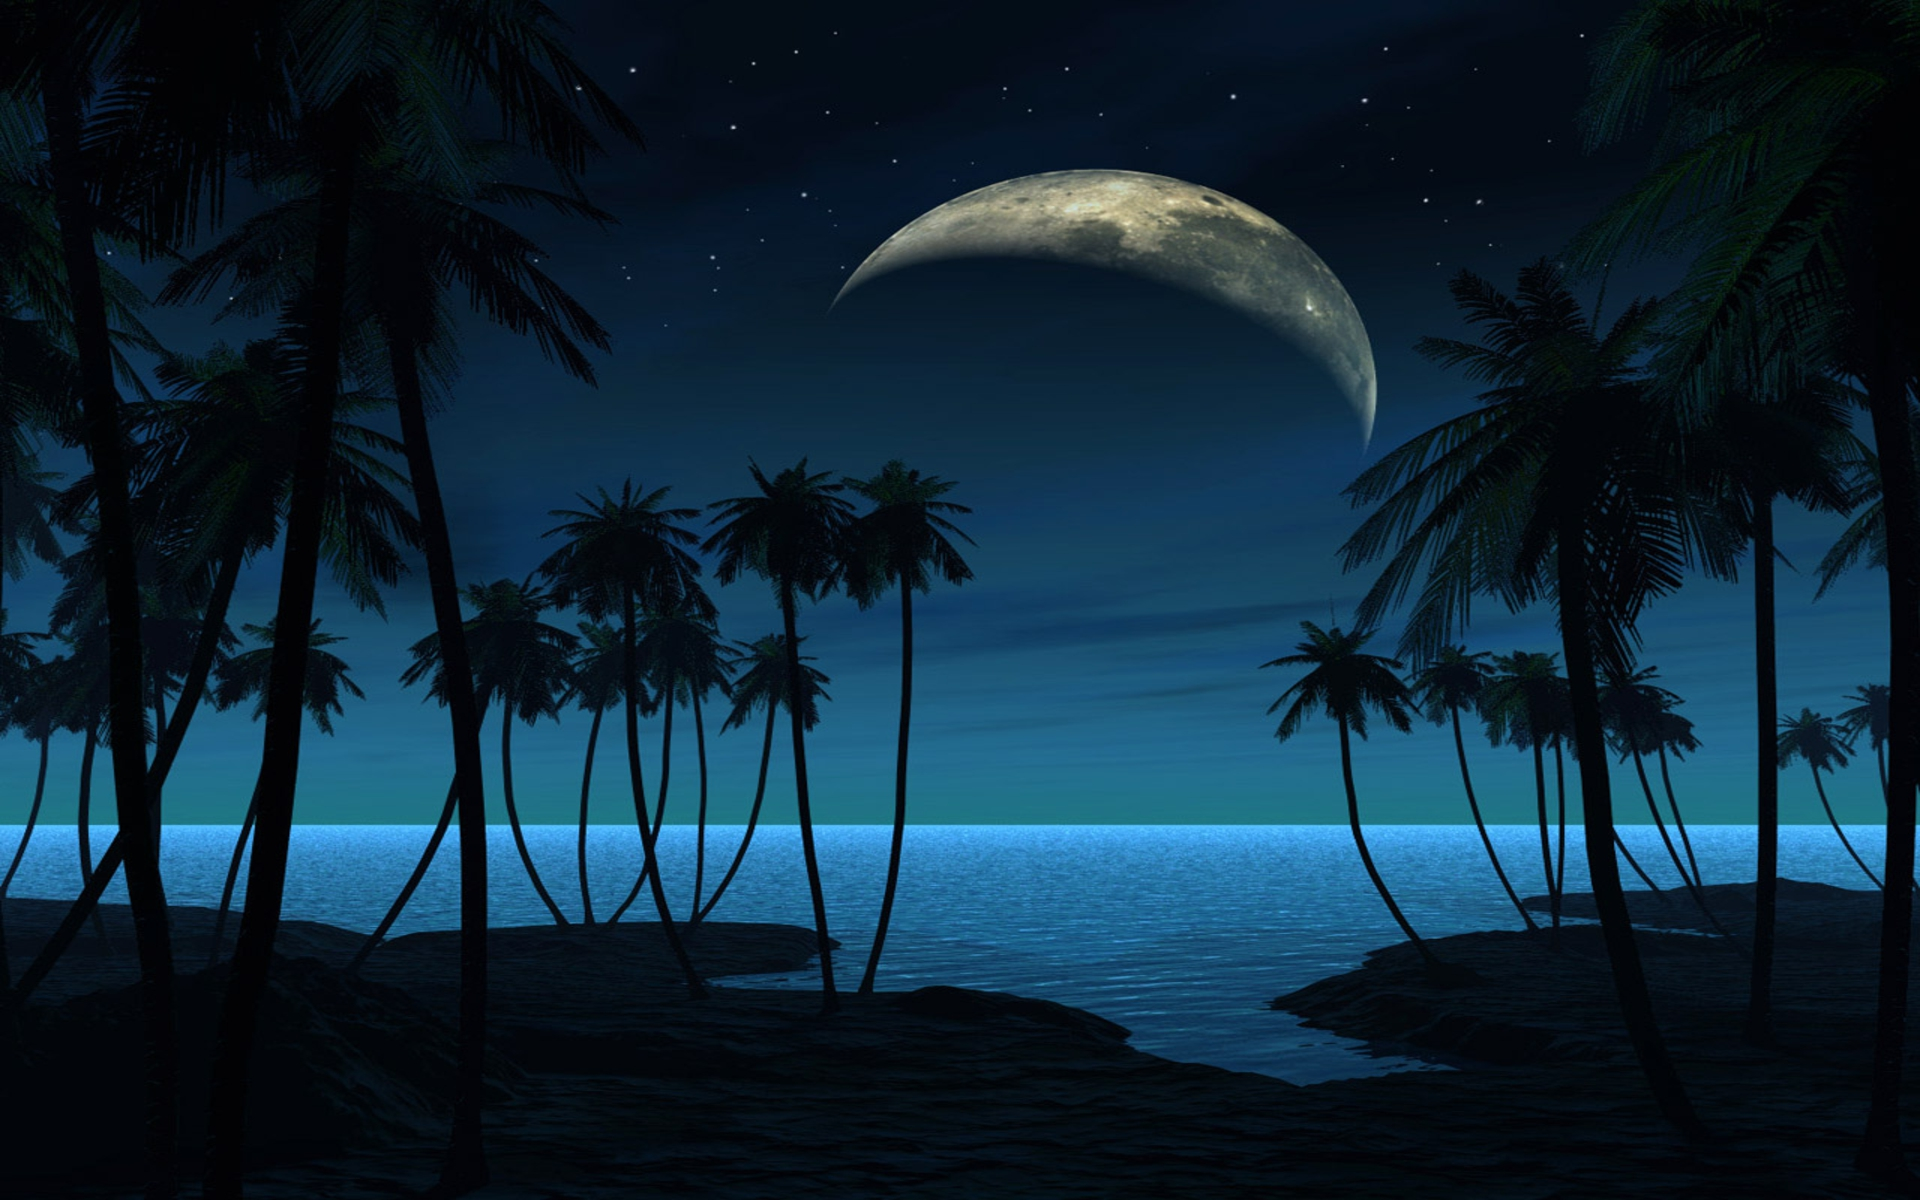 beach at night hd backgrounds | wallpaper.wiki